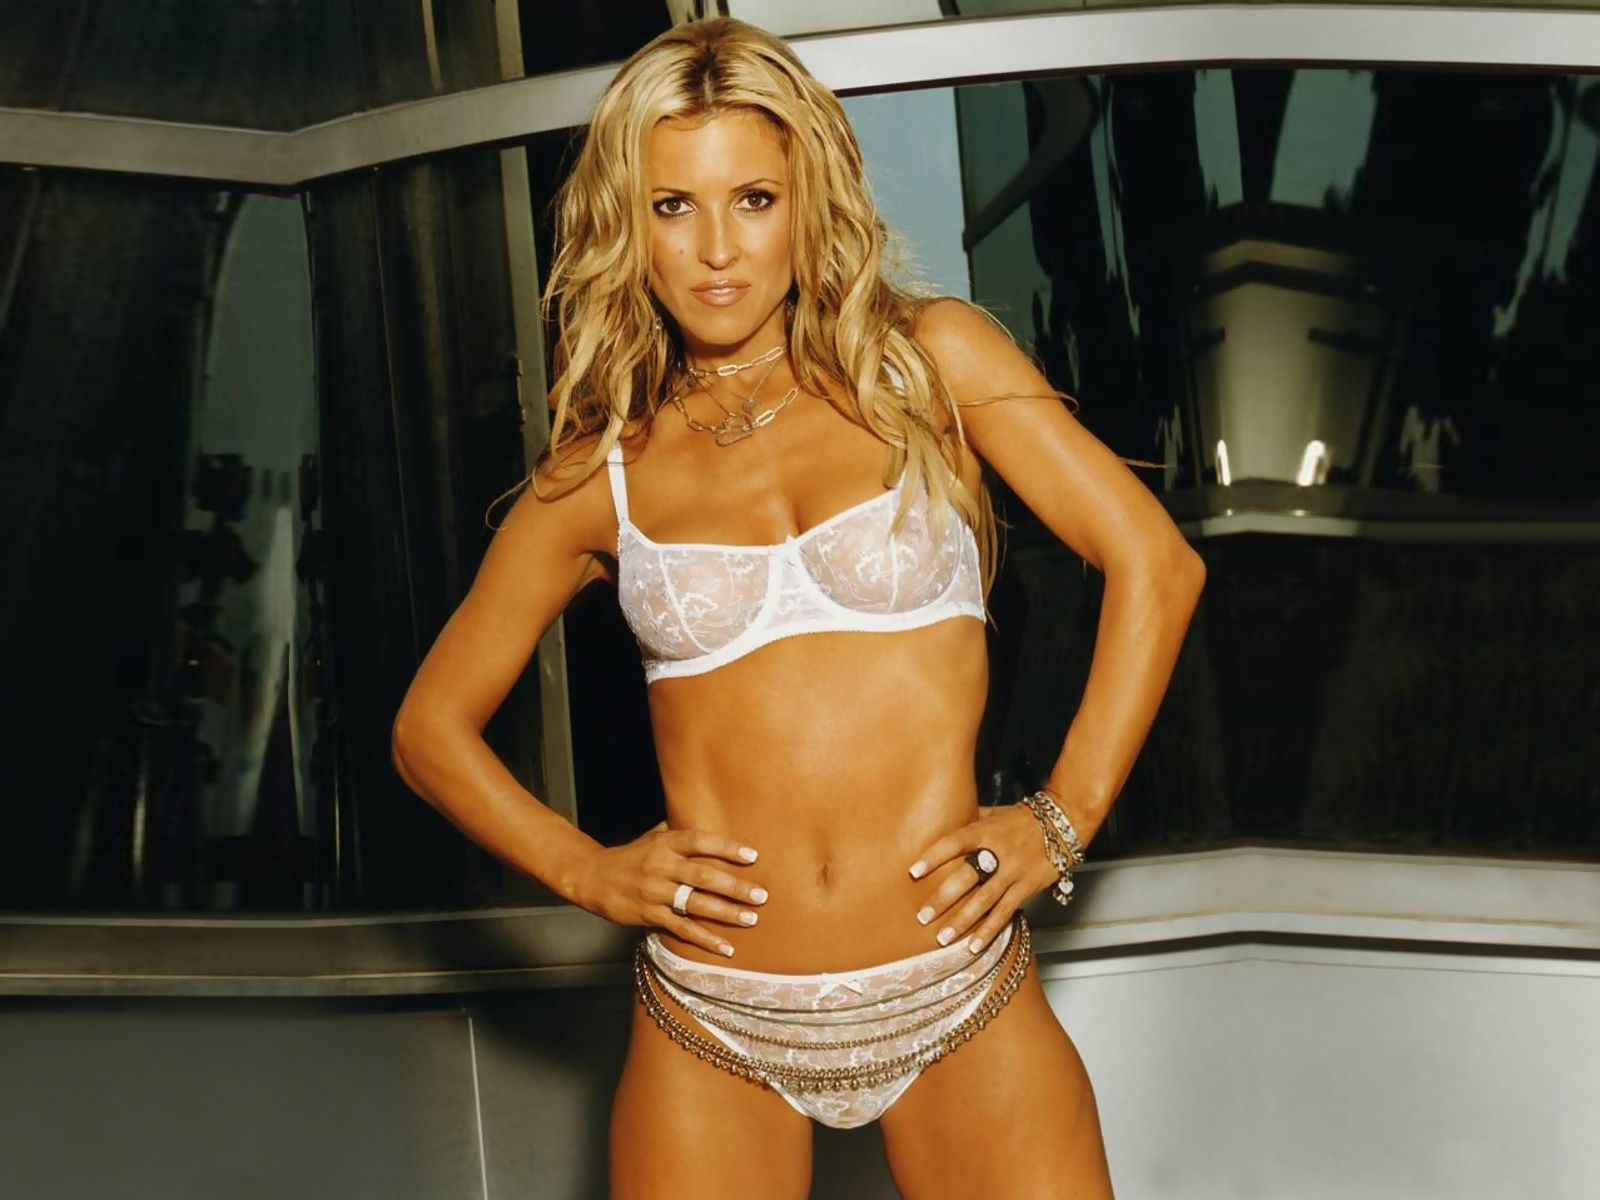 jillian barberie eric andrejillian barberie twitter, jillian barberie eric andre, jillian barberie, jillian barberie instagram, jillian barberie net worth, jillian barberie 2015, jillian barberie divorce, jillian barberie feet, jillian barberie facebook, jillian barberie hot, jillian barberie fired, jillian barberie bikini, jillian barberie howard stern, jillian barberie playboy, jillian barberie wiki, jillian barberie images, jillian barberie measurements, jillian barberie pregnant, jillian barberie too faced, jillian barberie plastic surgery